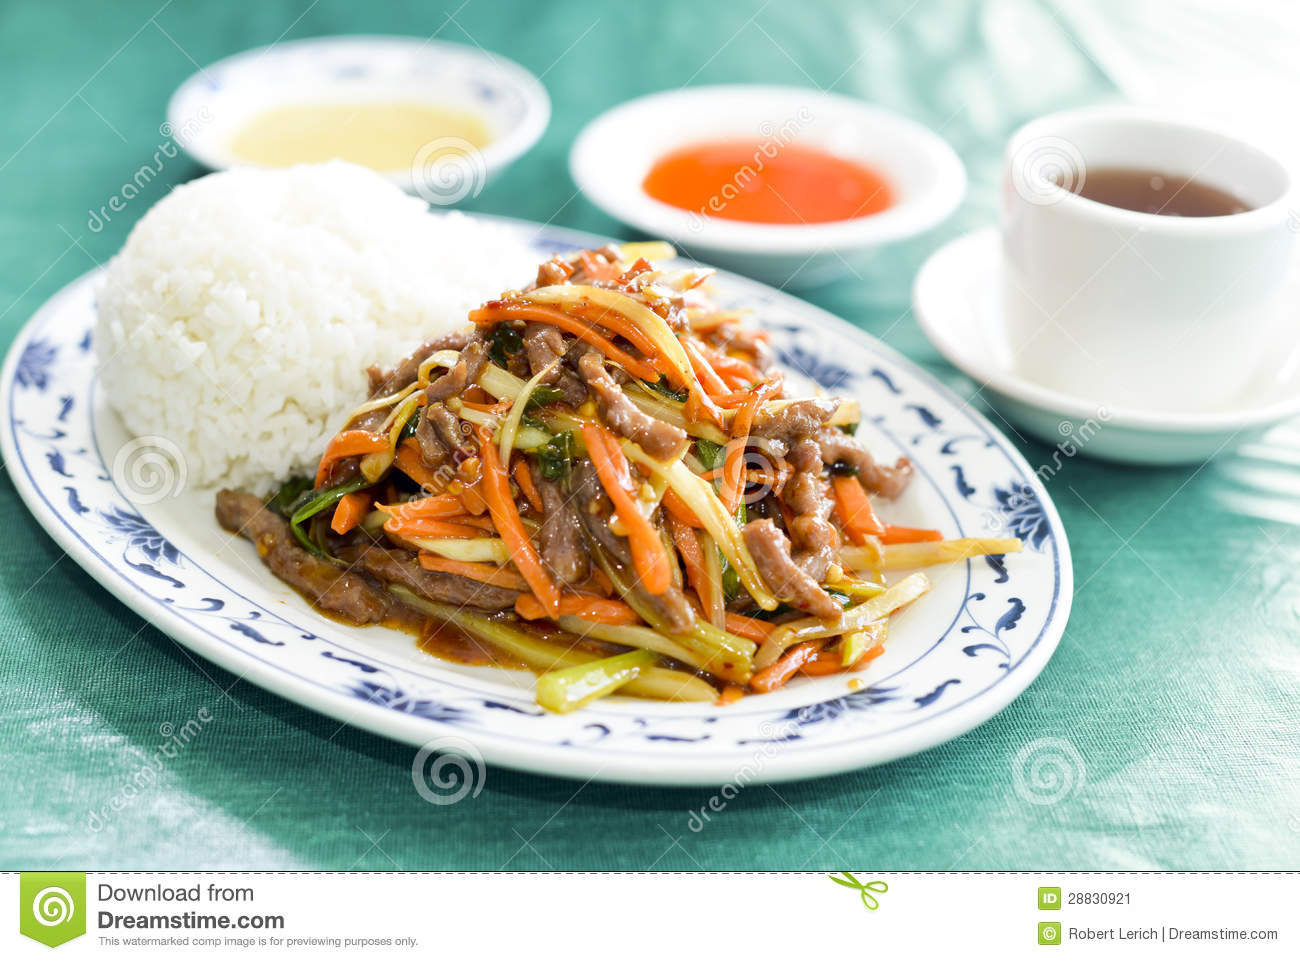 Chinese Roast Pork With Mixed Vegetables Stock Image - Image: 28830921